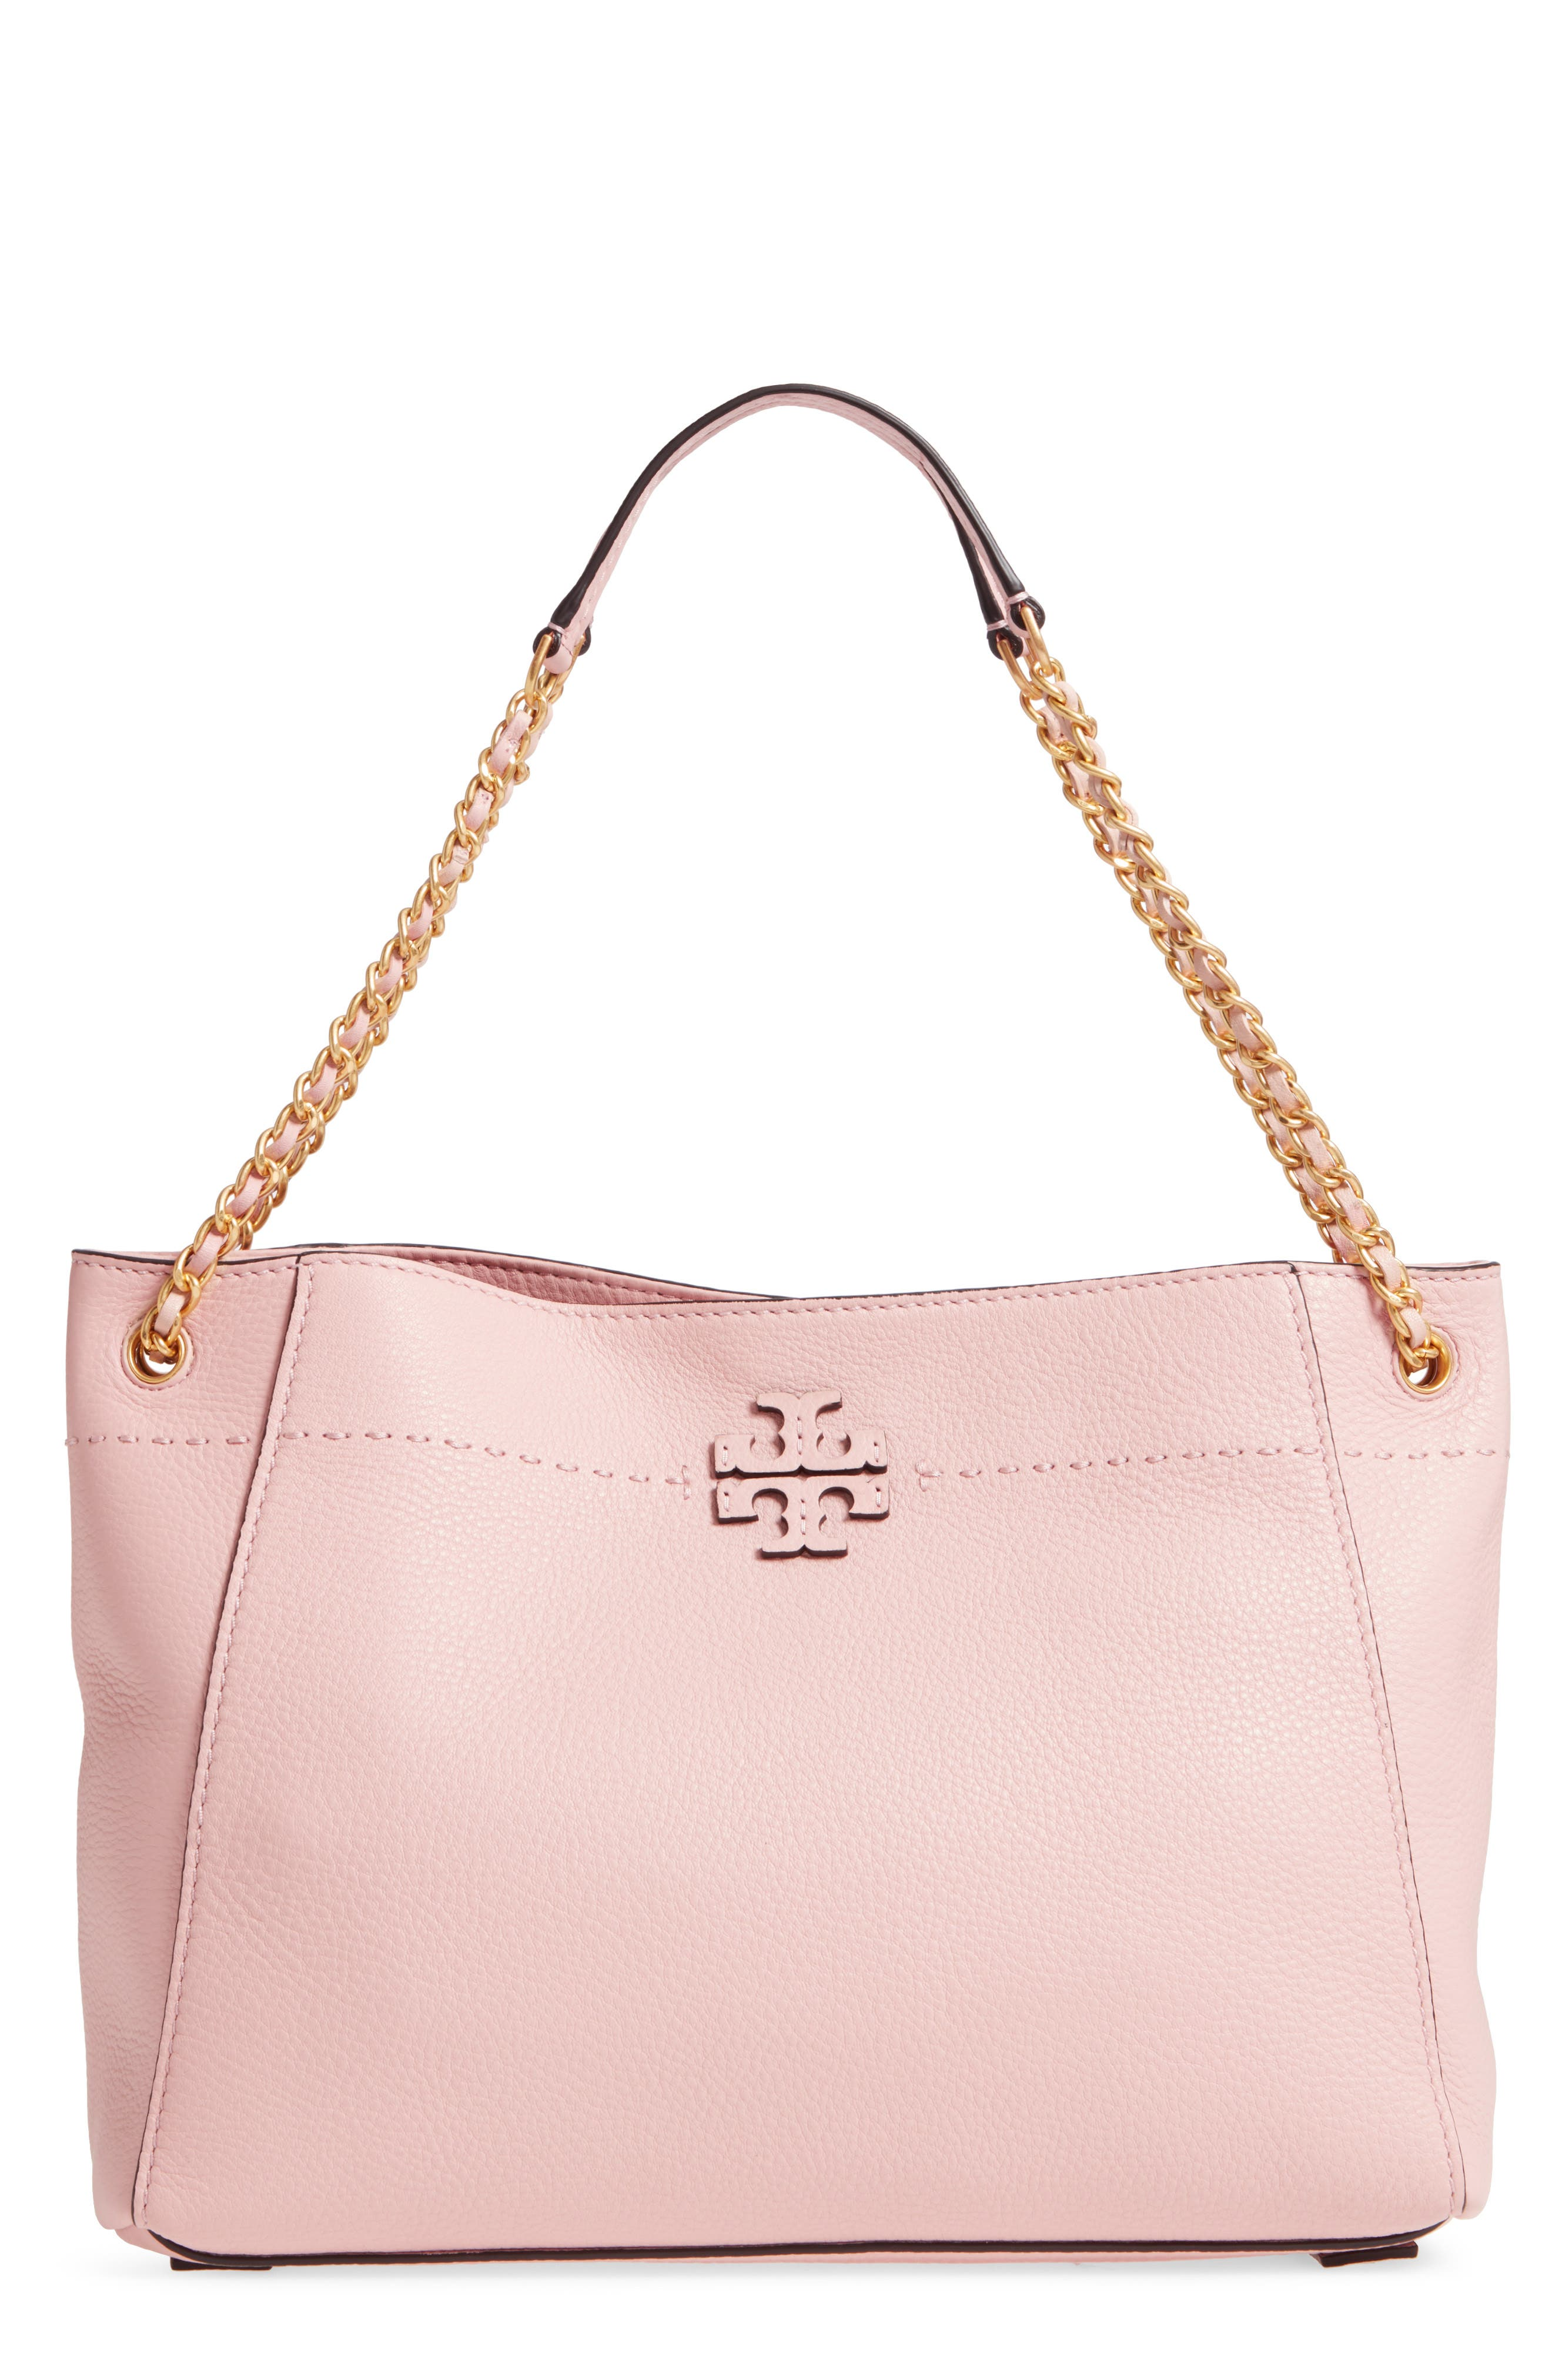 Main Image - Tory Burch McGraw Slouchy Leather Shoulder Bag